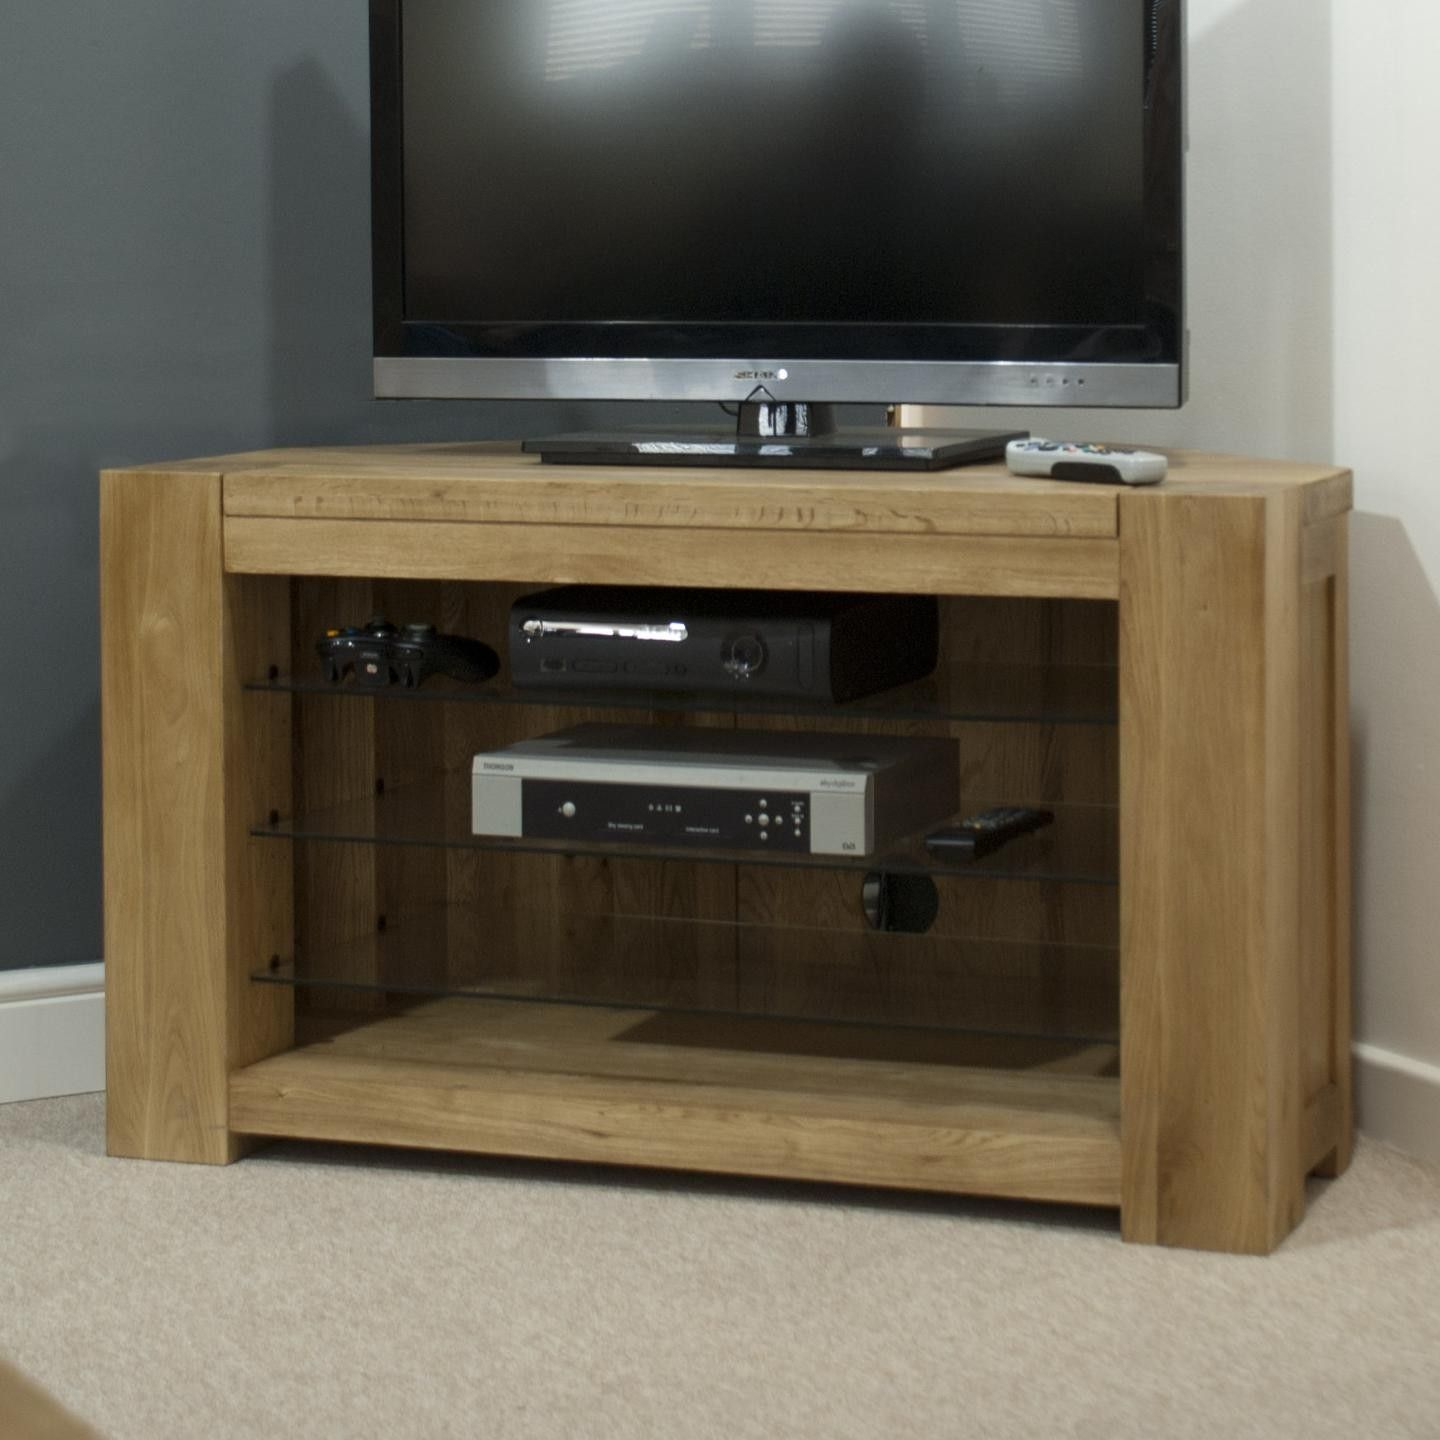 Rhino Oak Corner Tv Unit Willoby S Tv Units Pinterest Tv  # Meuble Tv Jimi